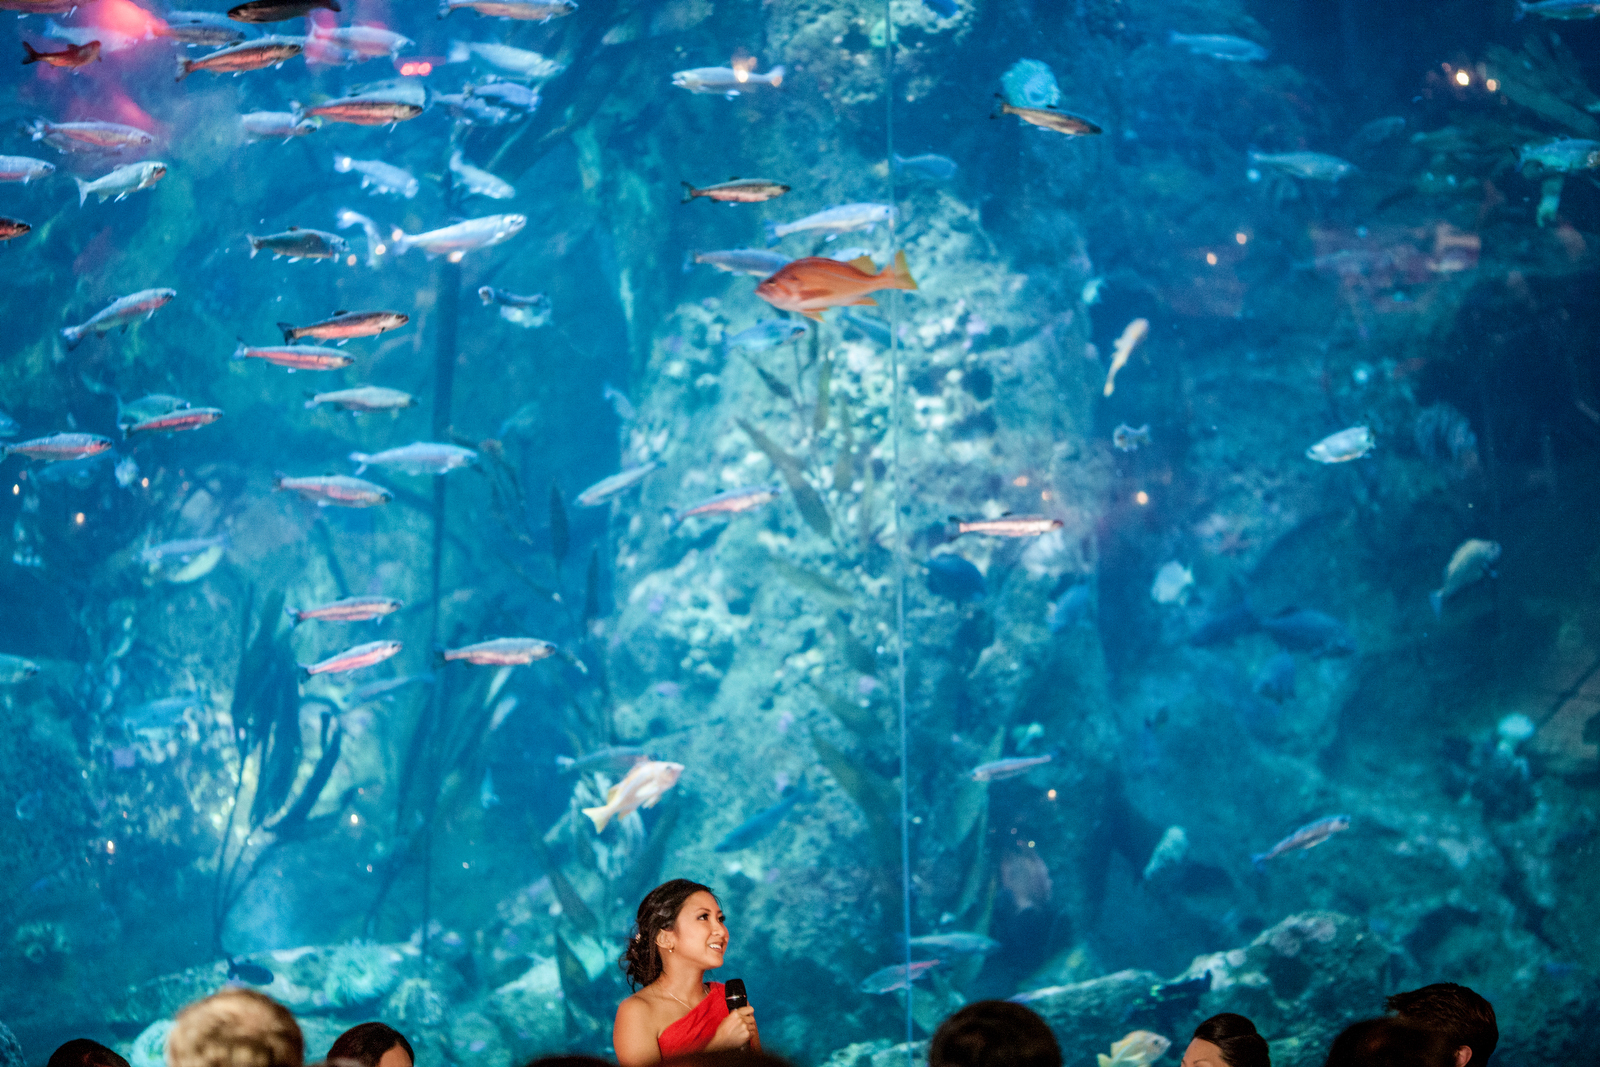 A bridesmaid gives a speech in front of the big fish tank during the reception of Alina & Patrick at the Seattle Aquarium. (Wedding Photography by Scott Eklund - Red Box Pictures)